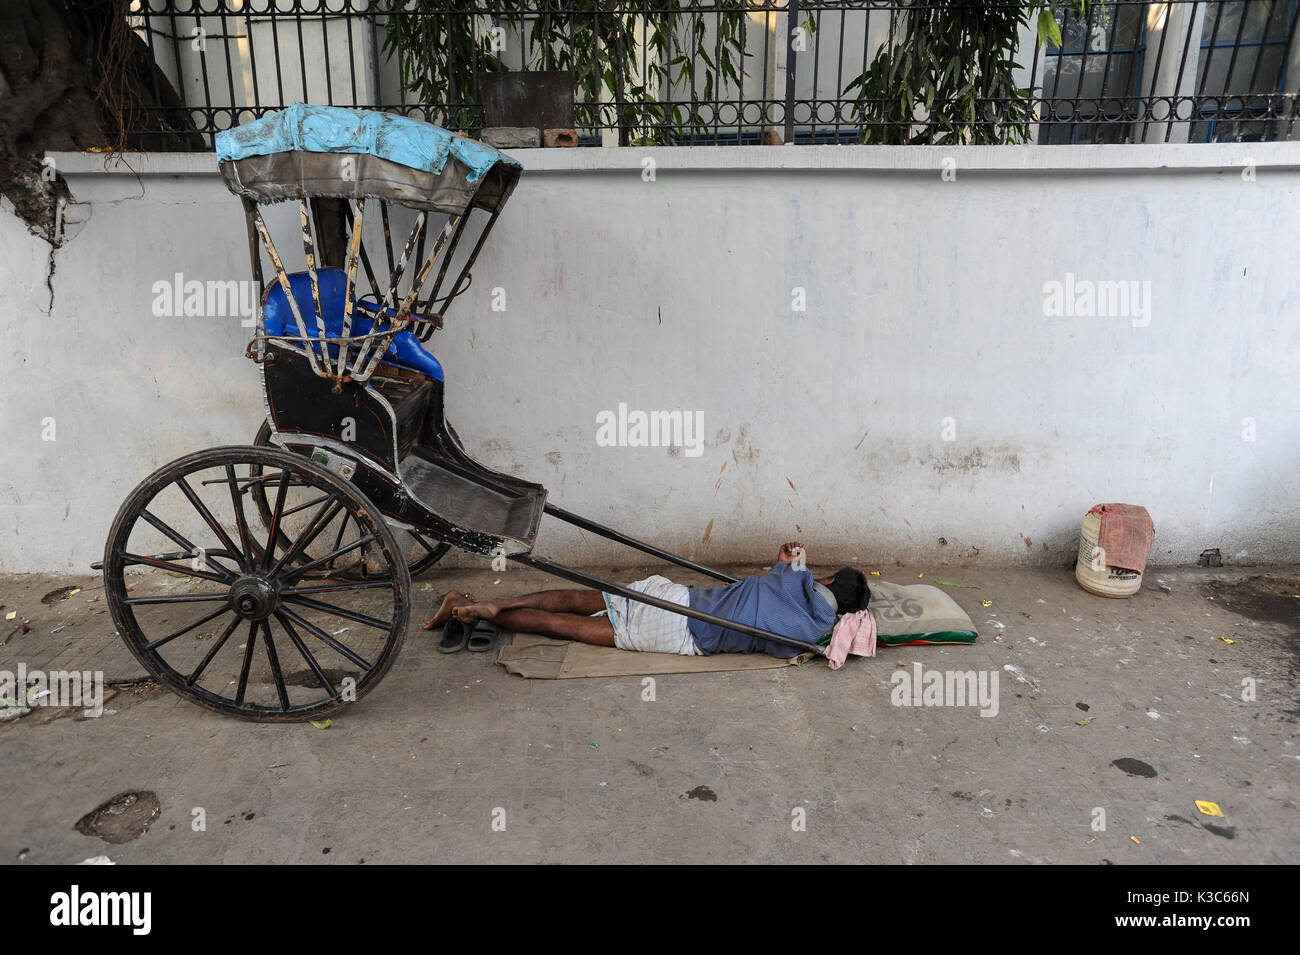 25.02.2011, Kolkata, West Bengal, India, Asia - A rickshaw puller sleeps next to his wooden rickshaw at a roadside - Stock Image